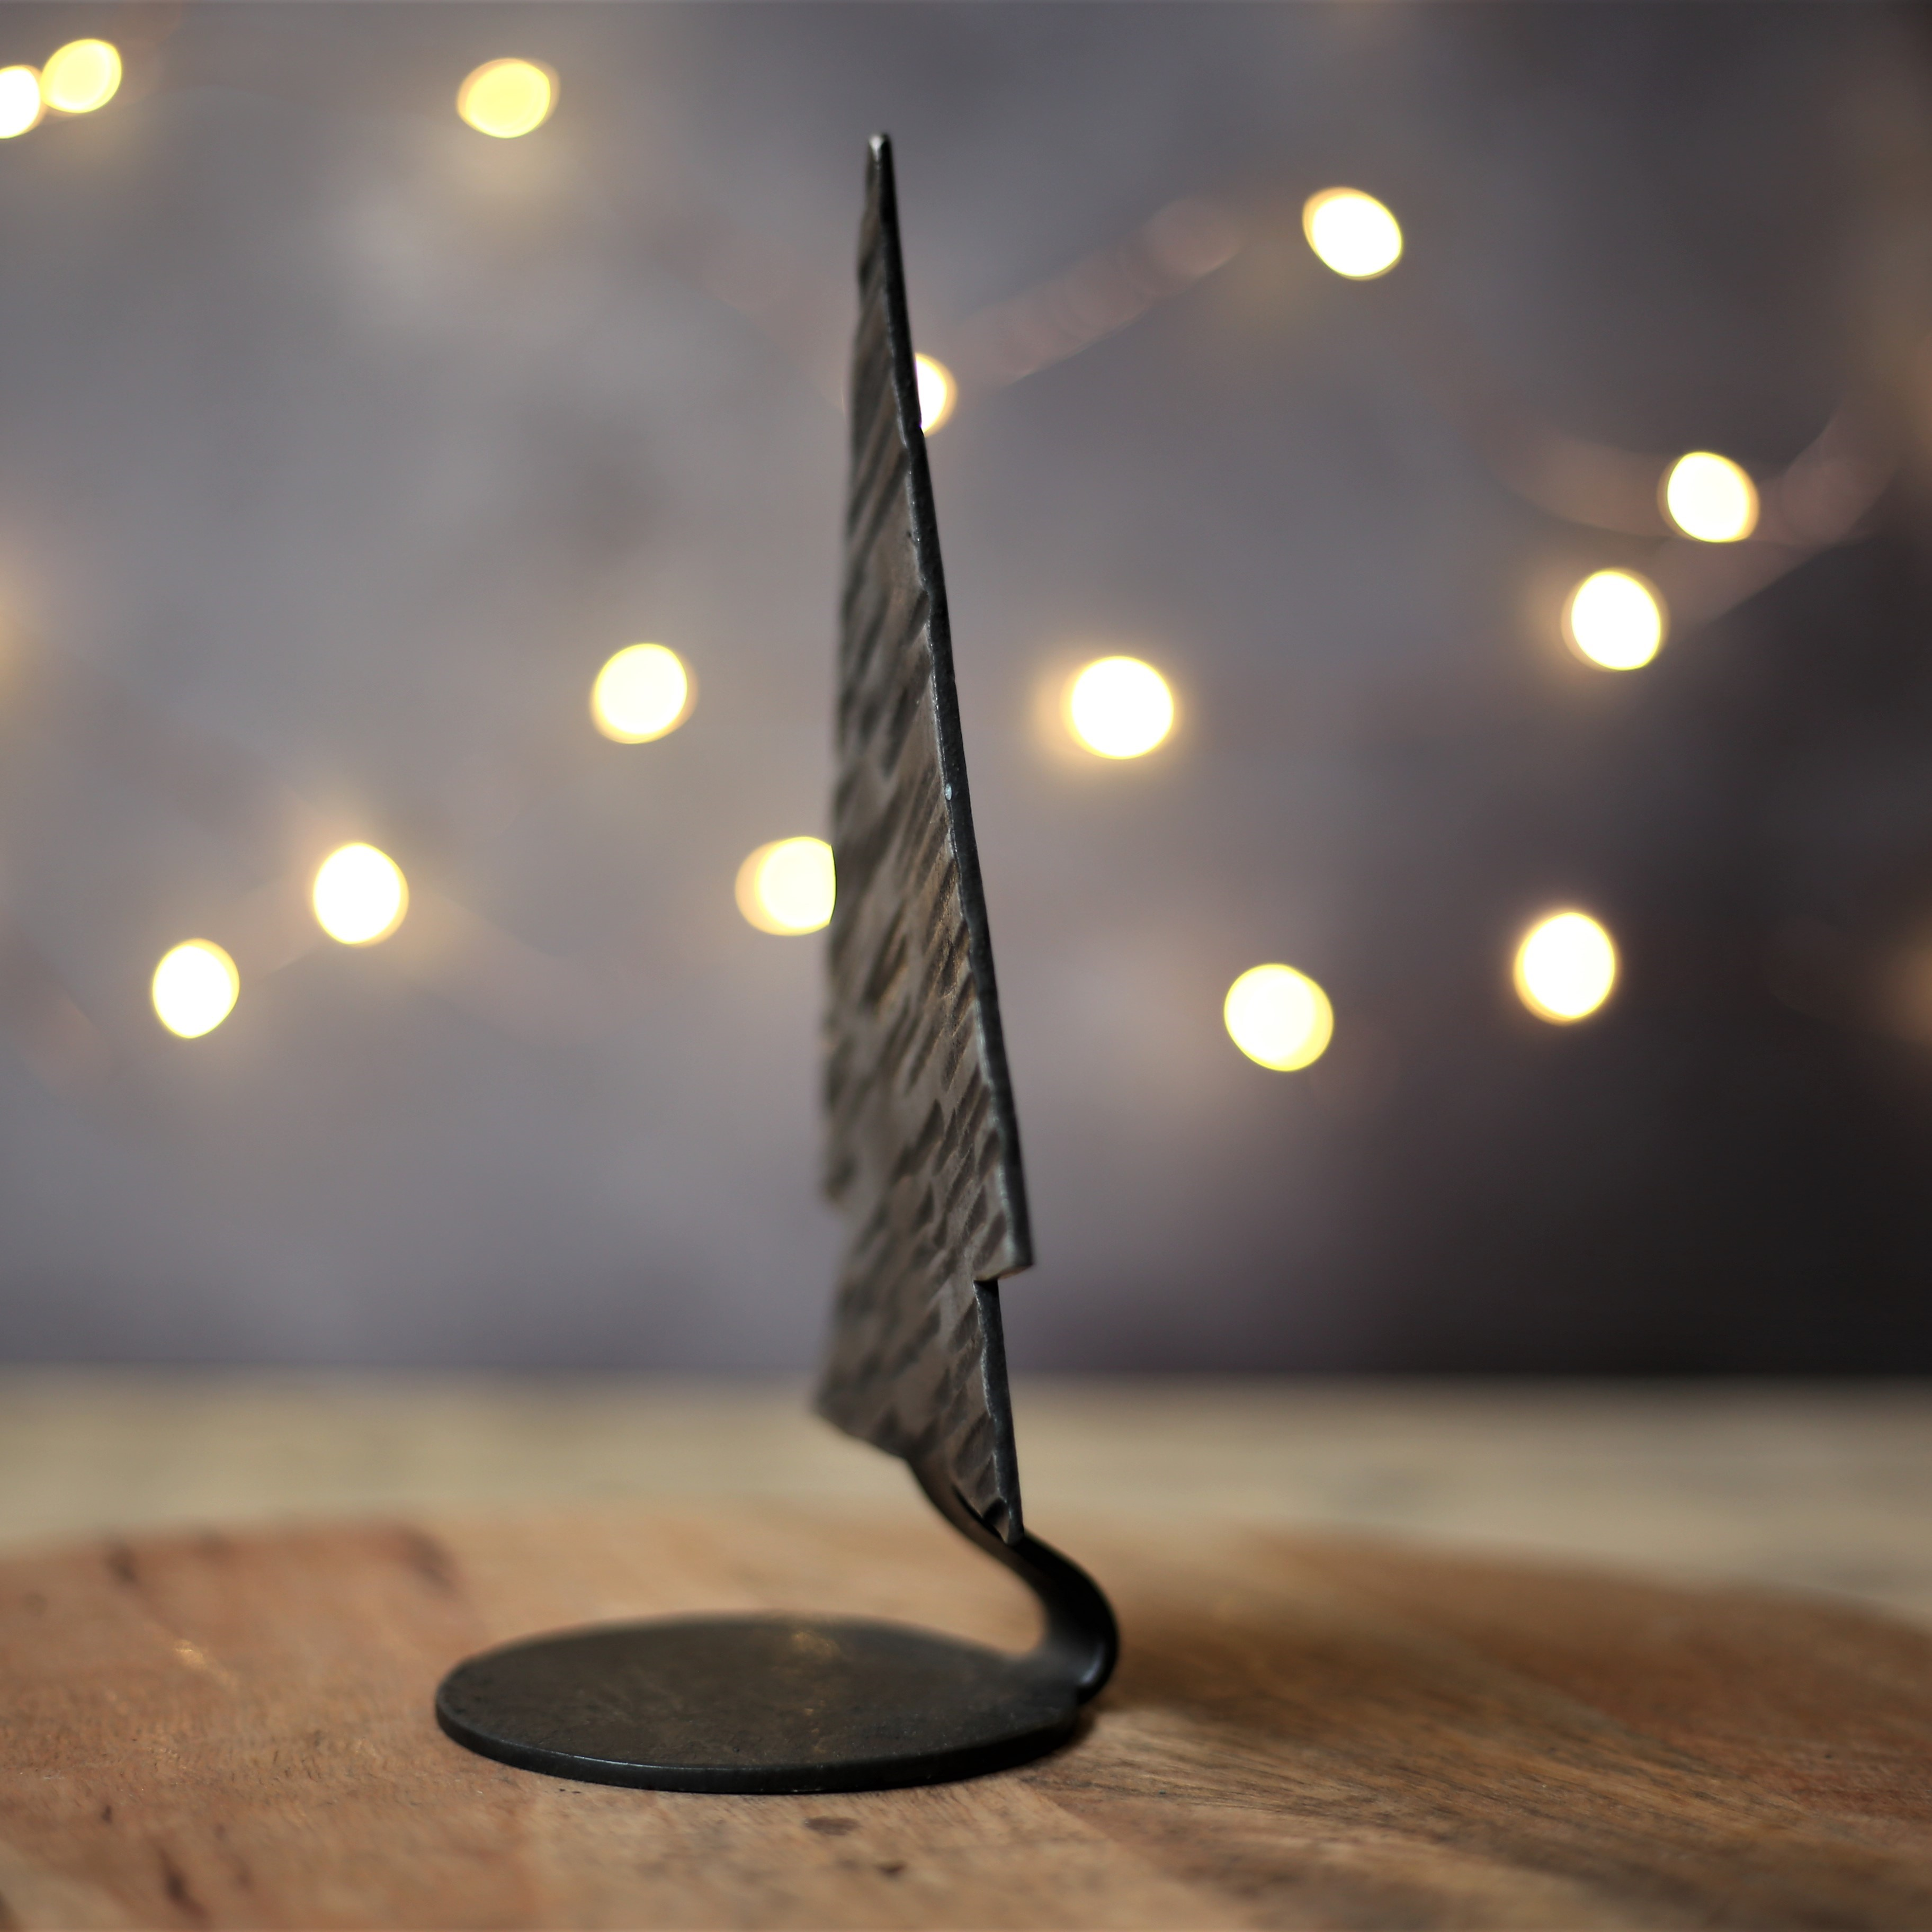 profile of christmas tree candle holder